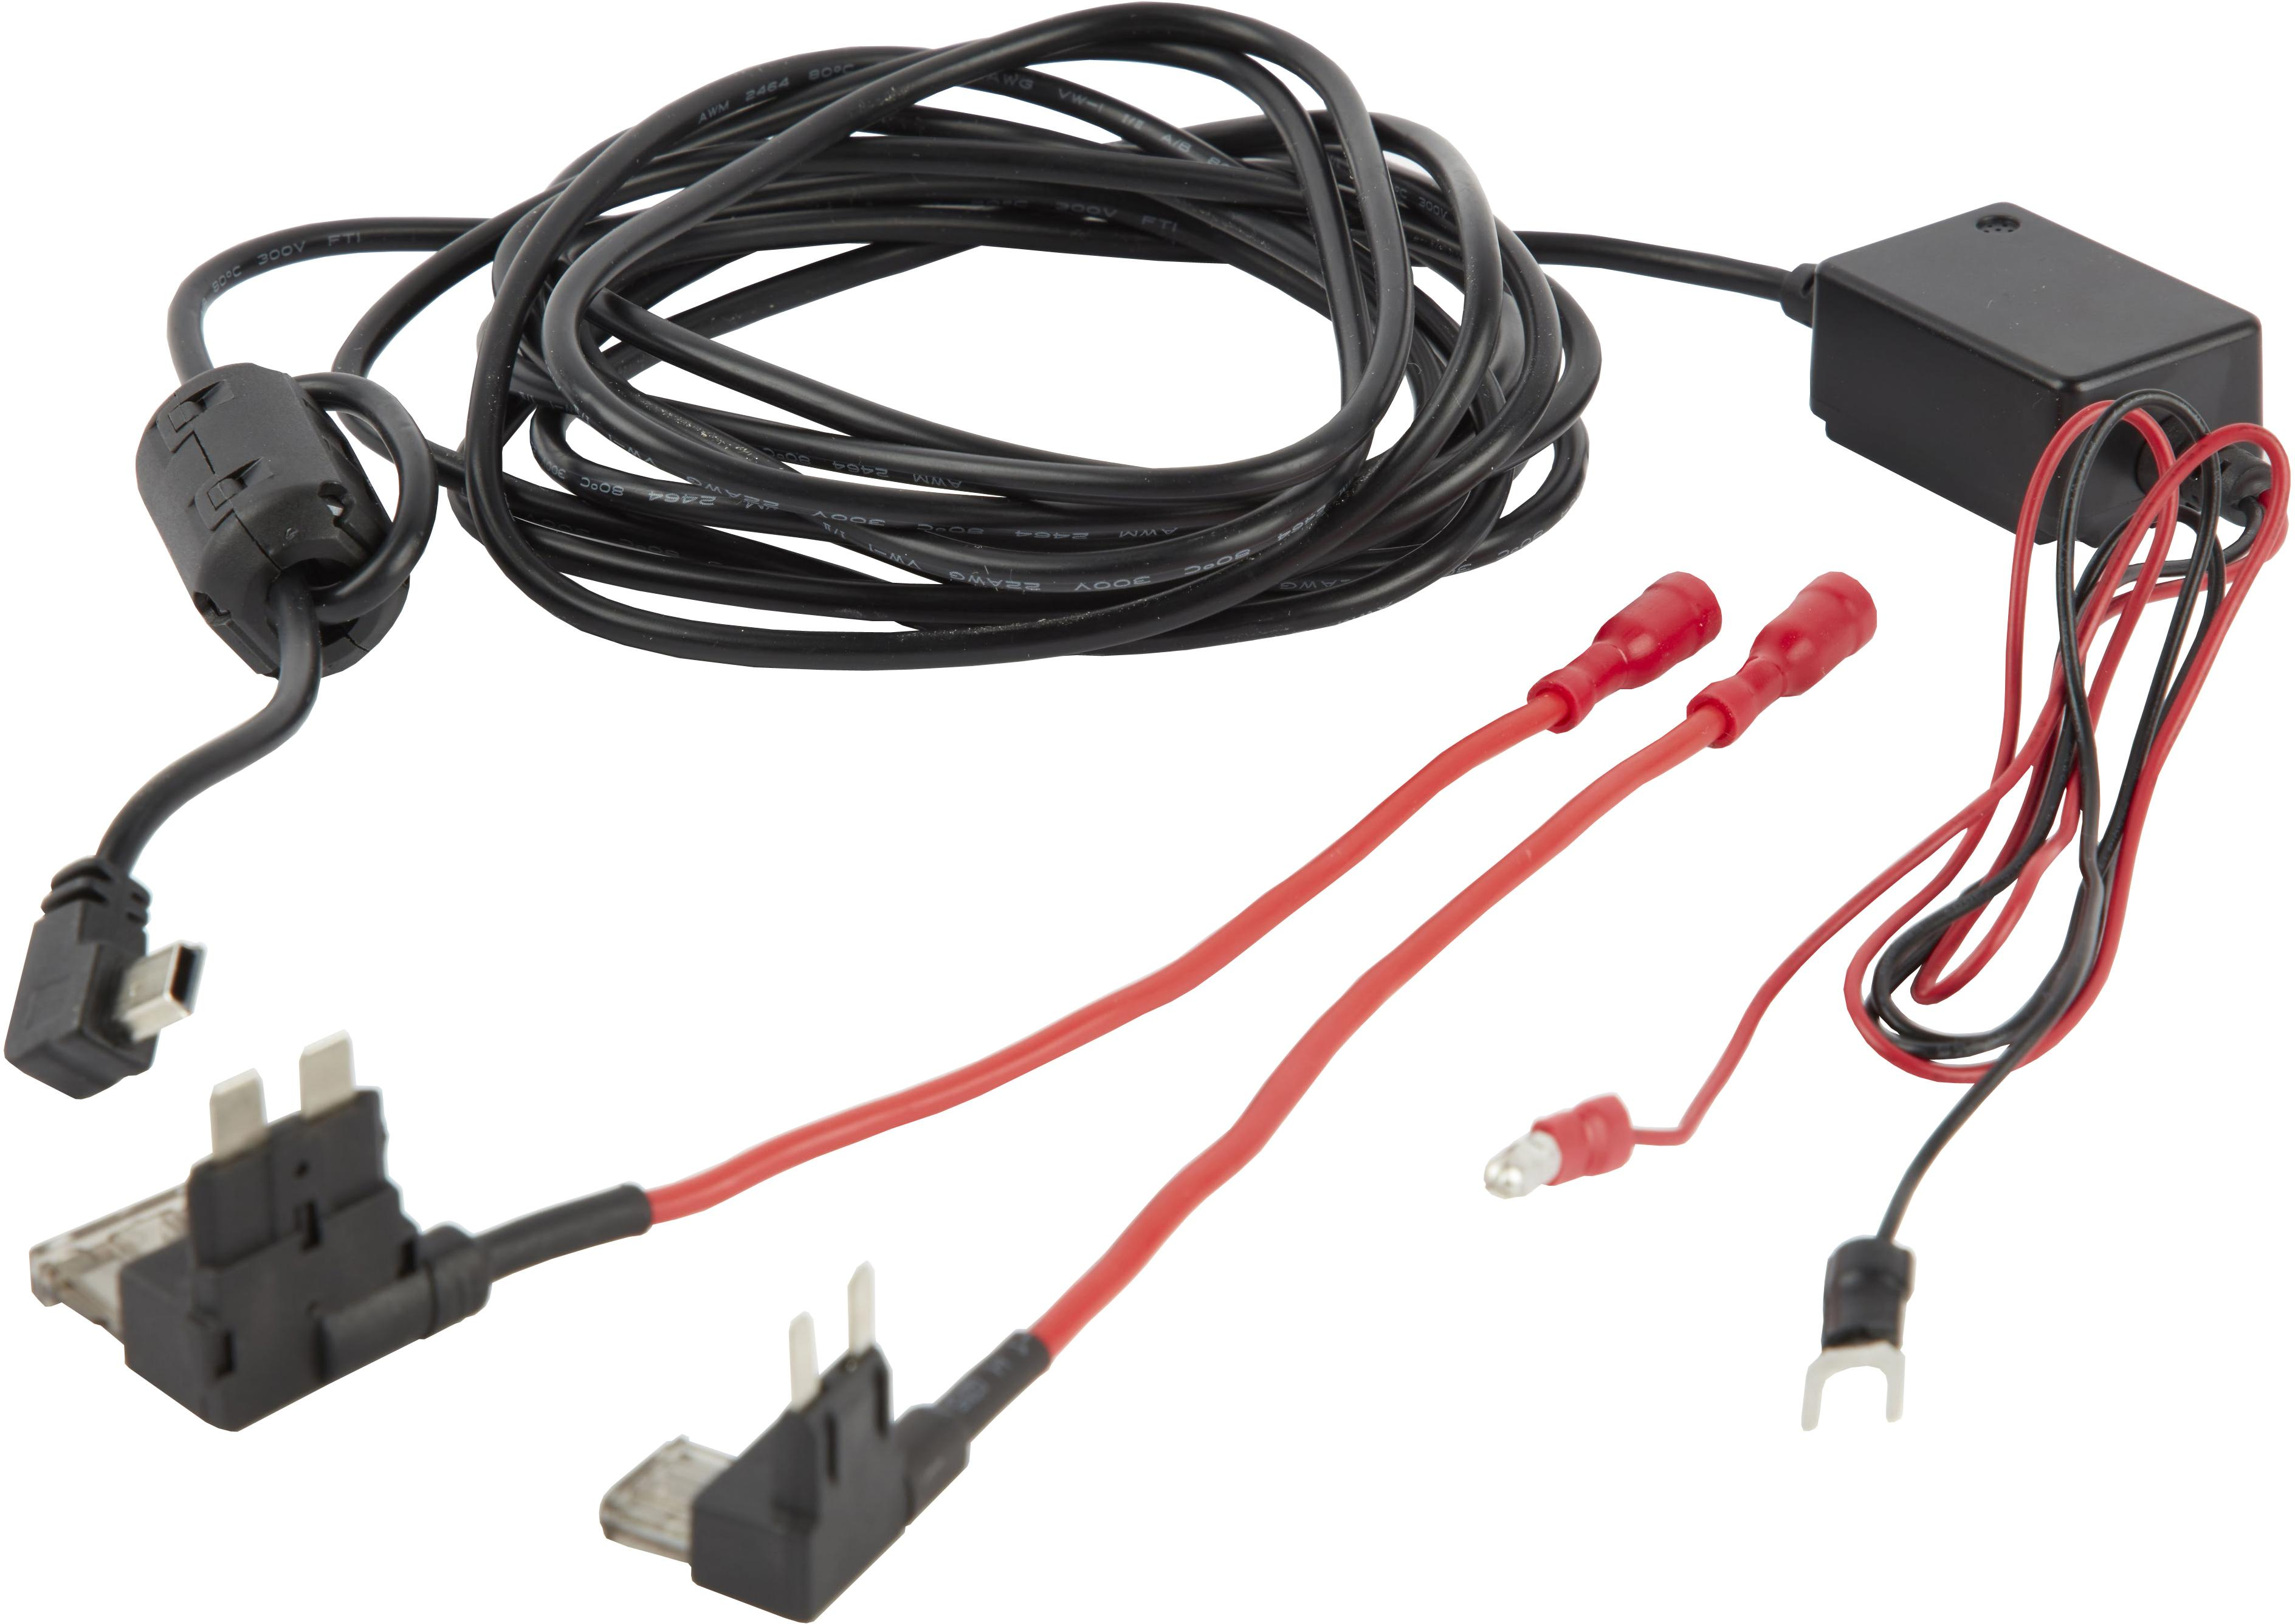 Amp Wiring Kit Halfords Diagram Essig For Subwoofers And An Sub Not Lossing U2022 Speaker Kits